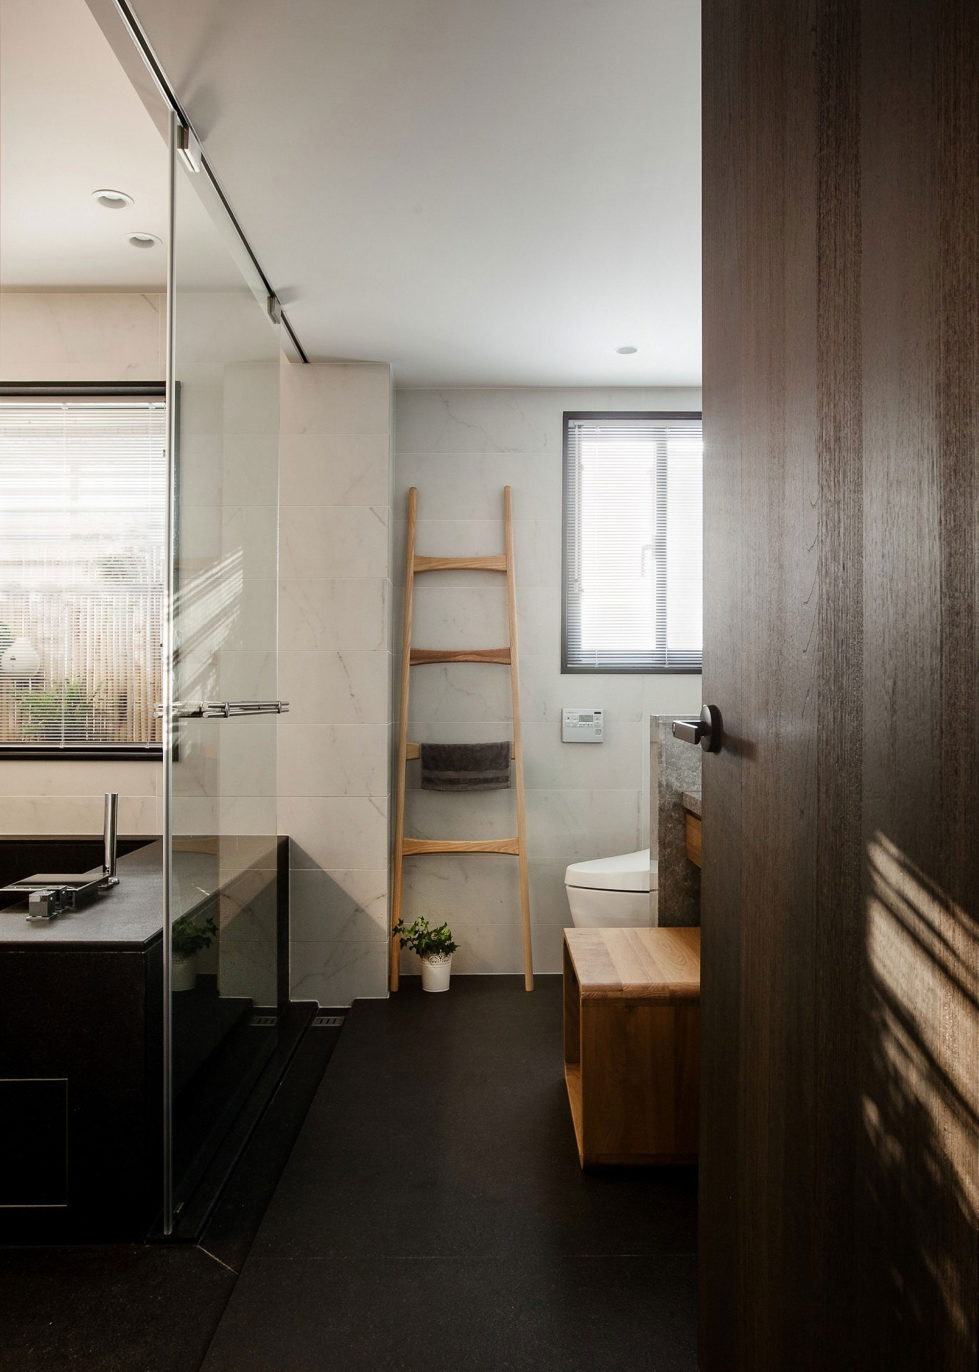 The Wang House Apartment In Taiwan Upon The Project Of The PM Design Studio 47